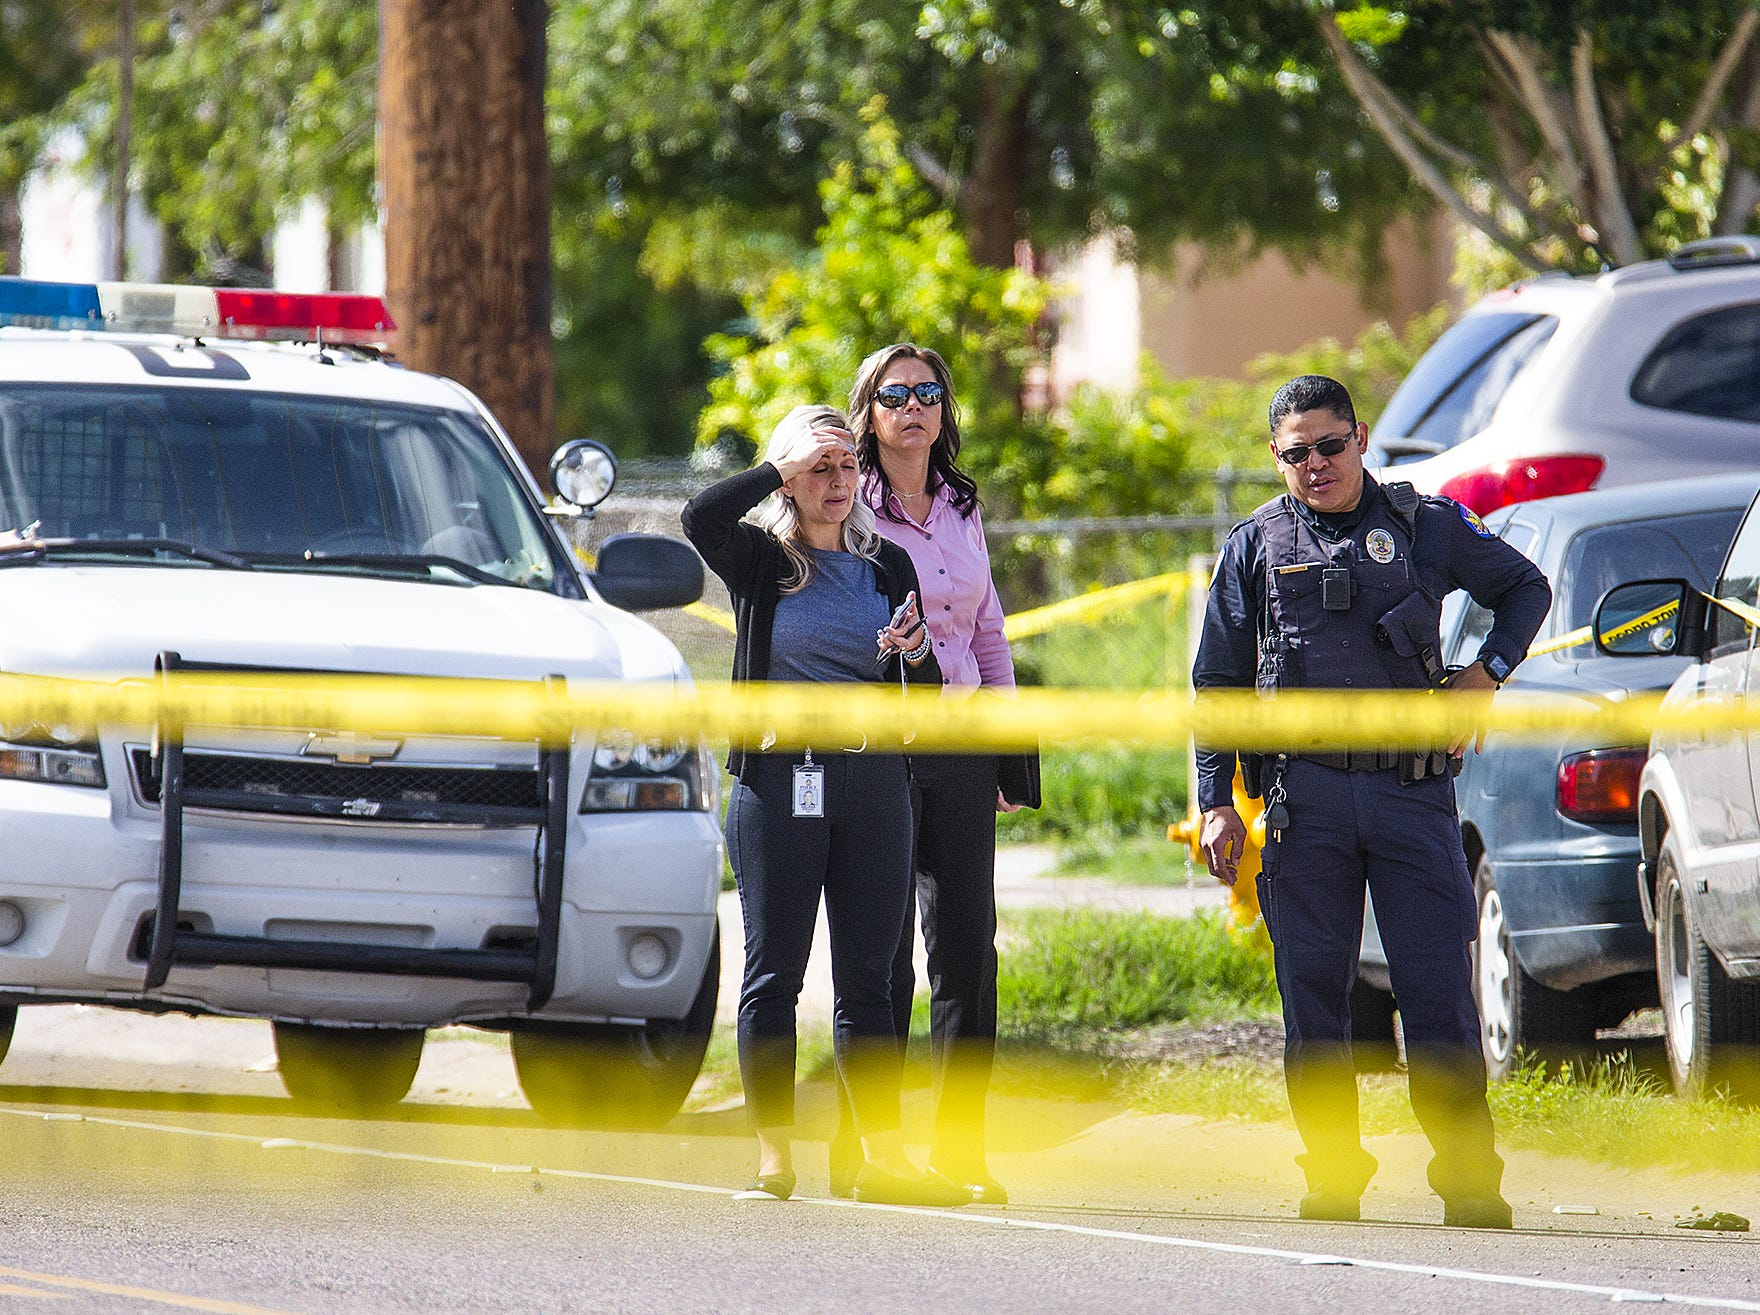 Phoenix police investigate the scene of a fatal shooting near Butler Drive and 27th Avenue in Phoenix on March 19, 2019.